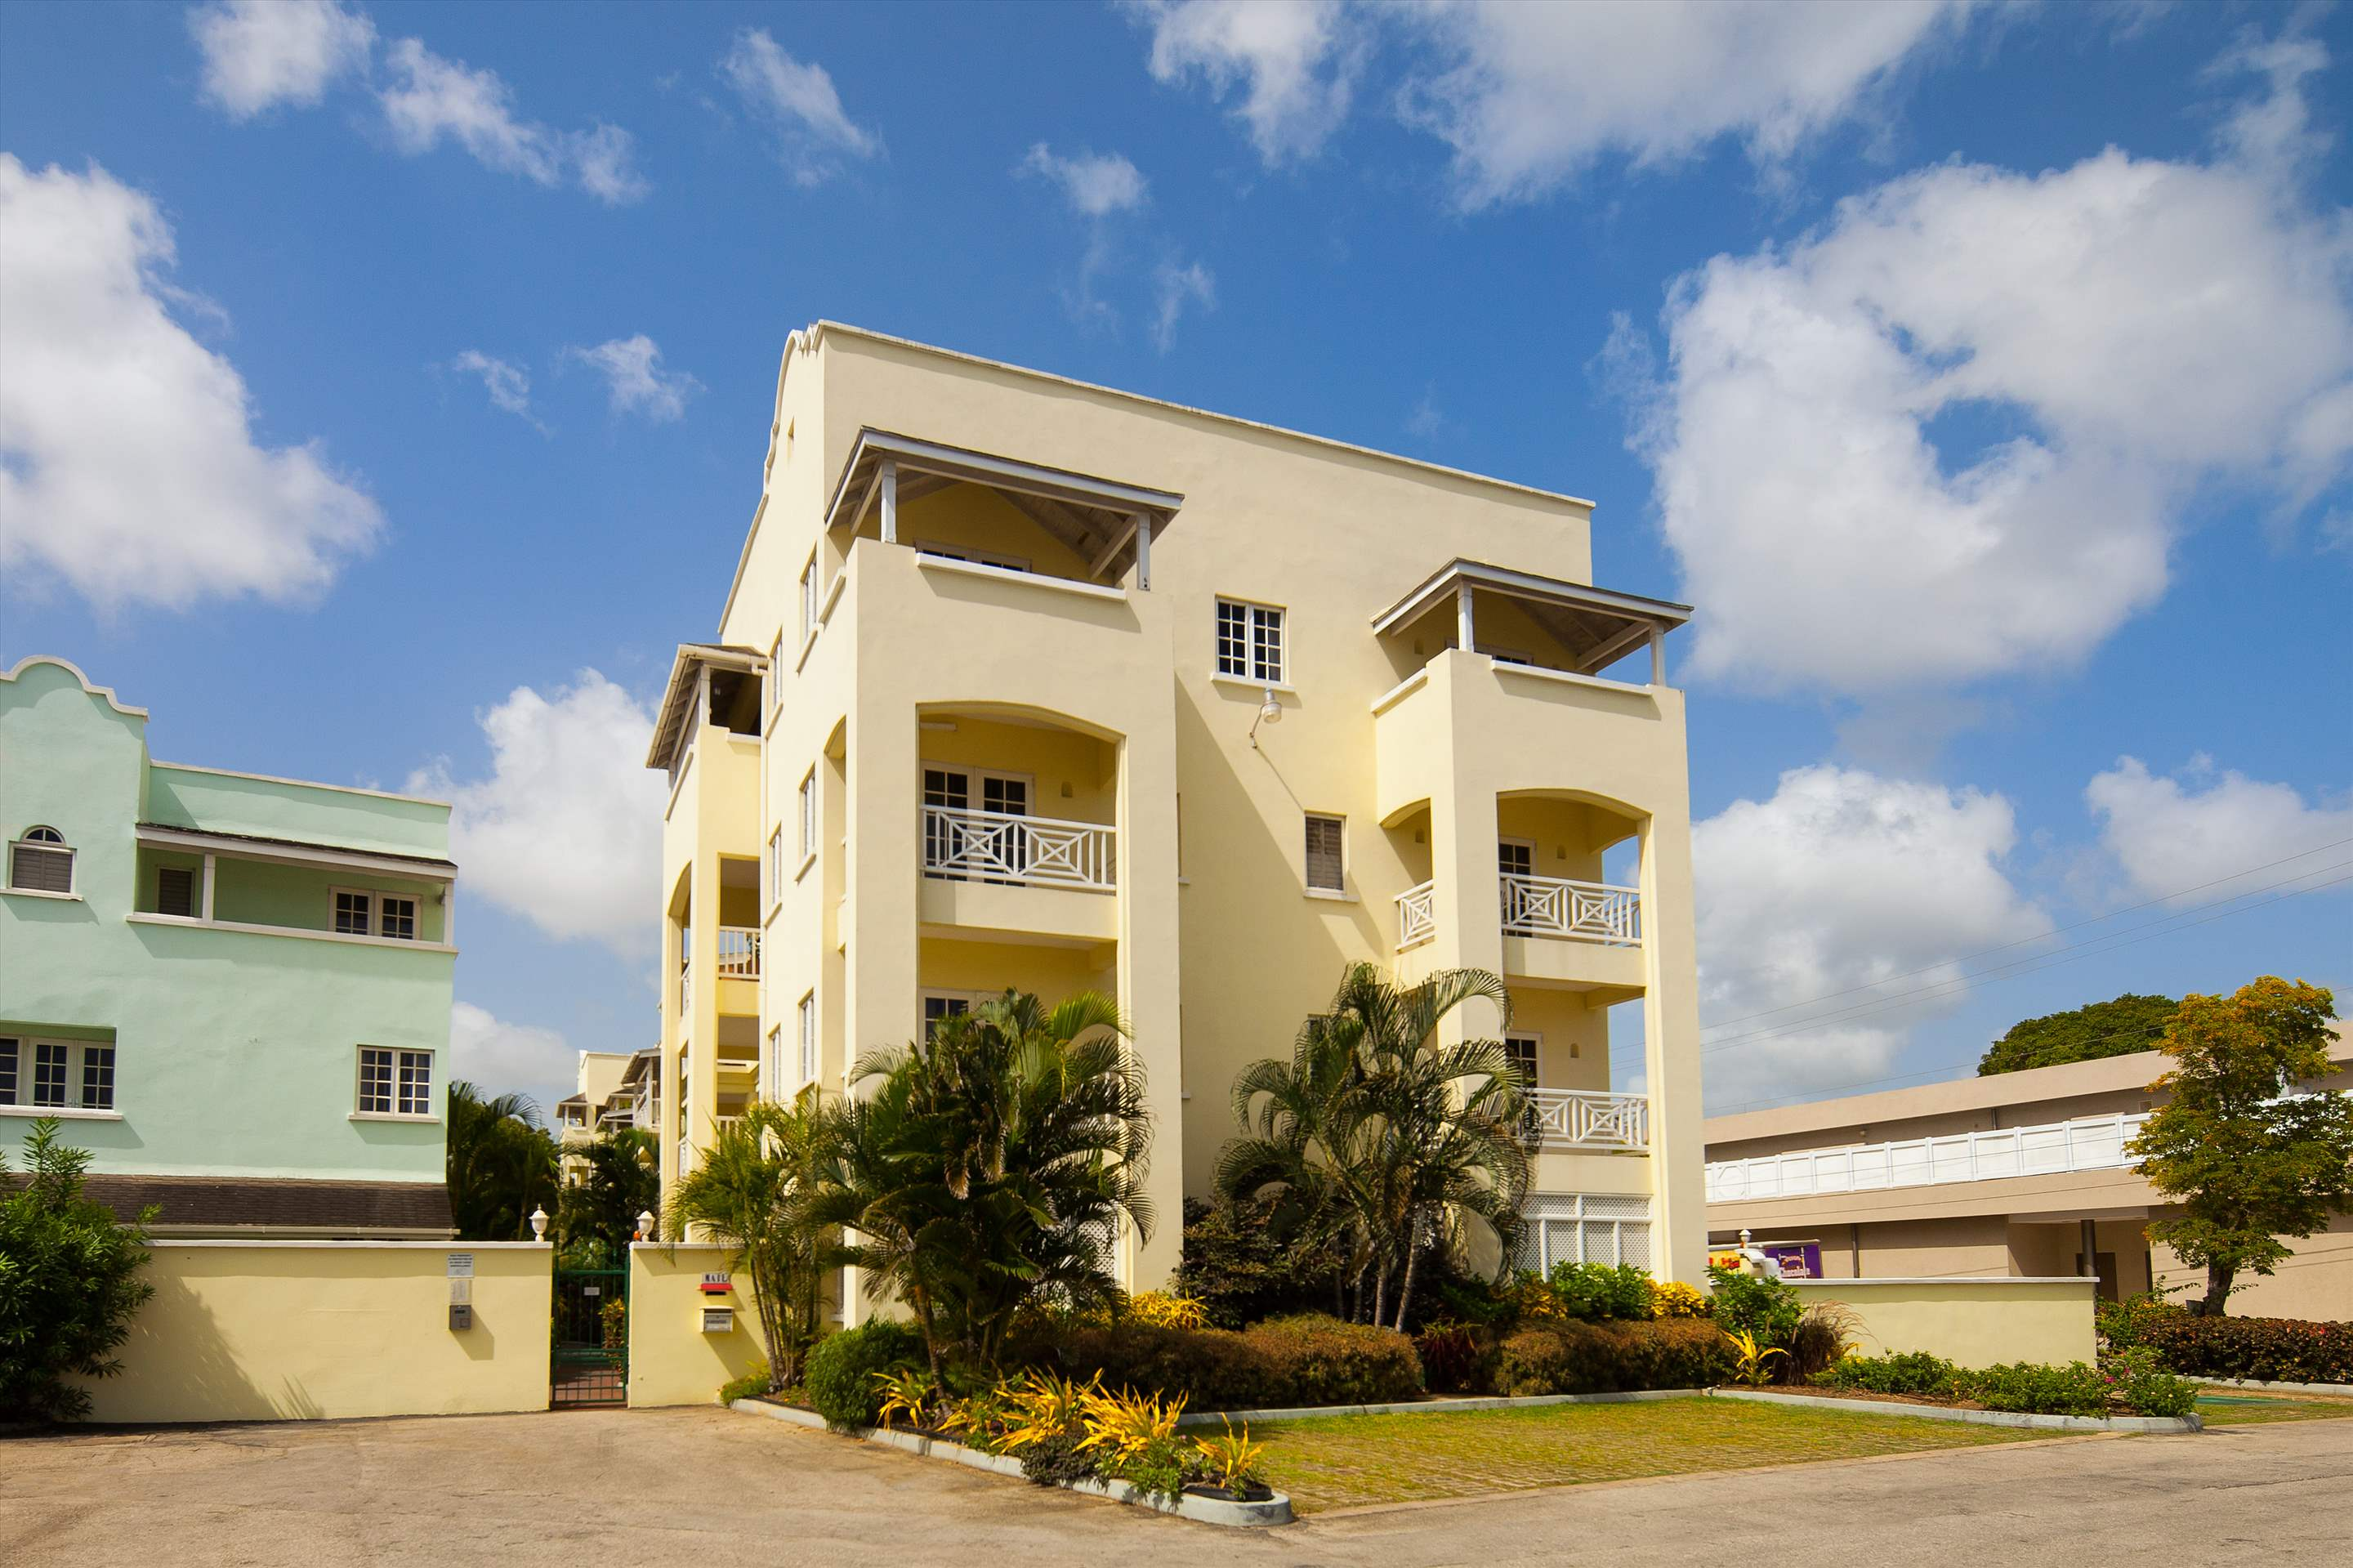 Margate Gardens 4, 3 bedroom, 3 bedroom apartment in St. Lawrence Gap & South Coast, Barbados Photo #14